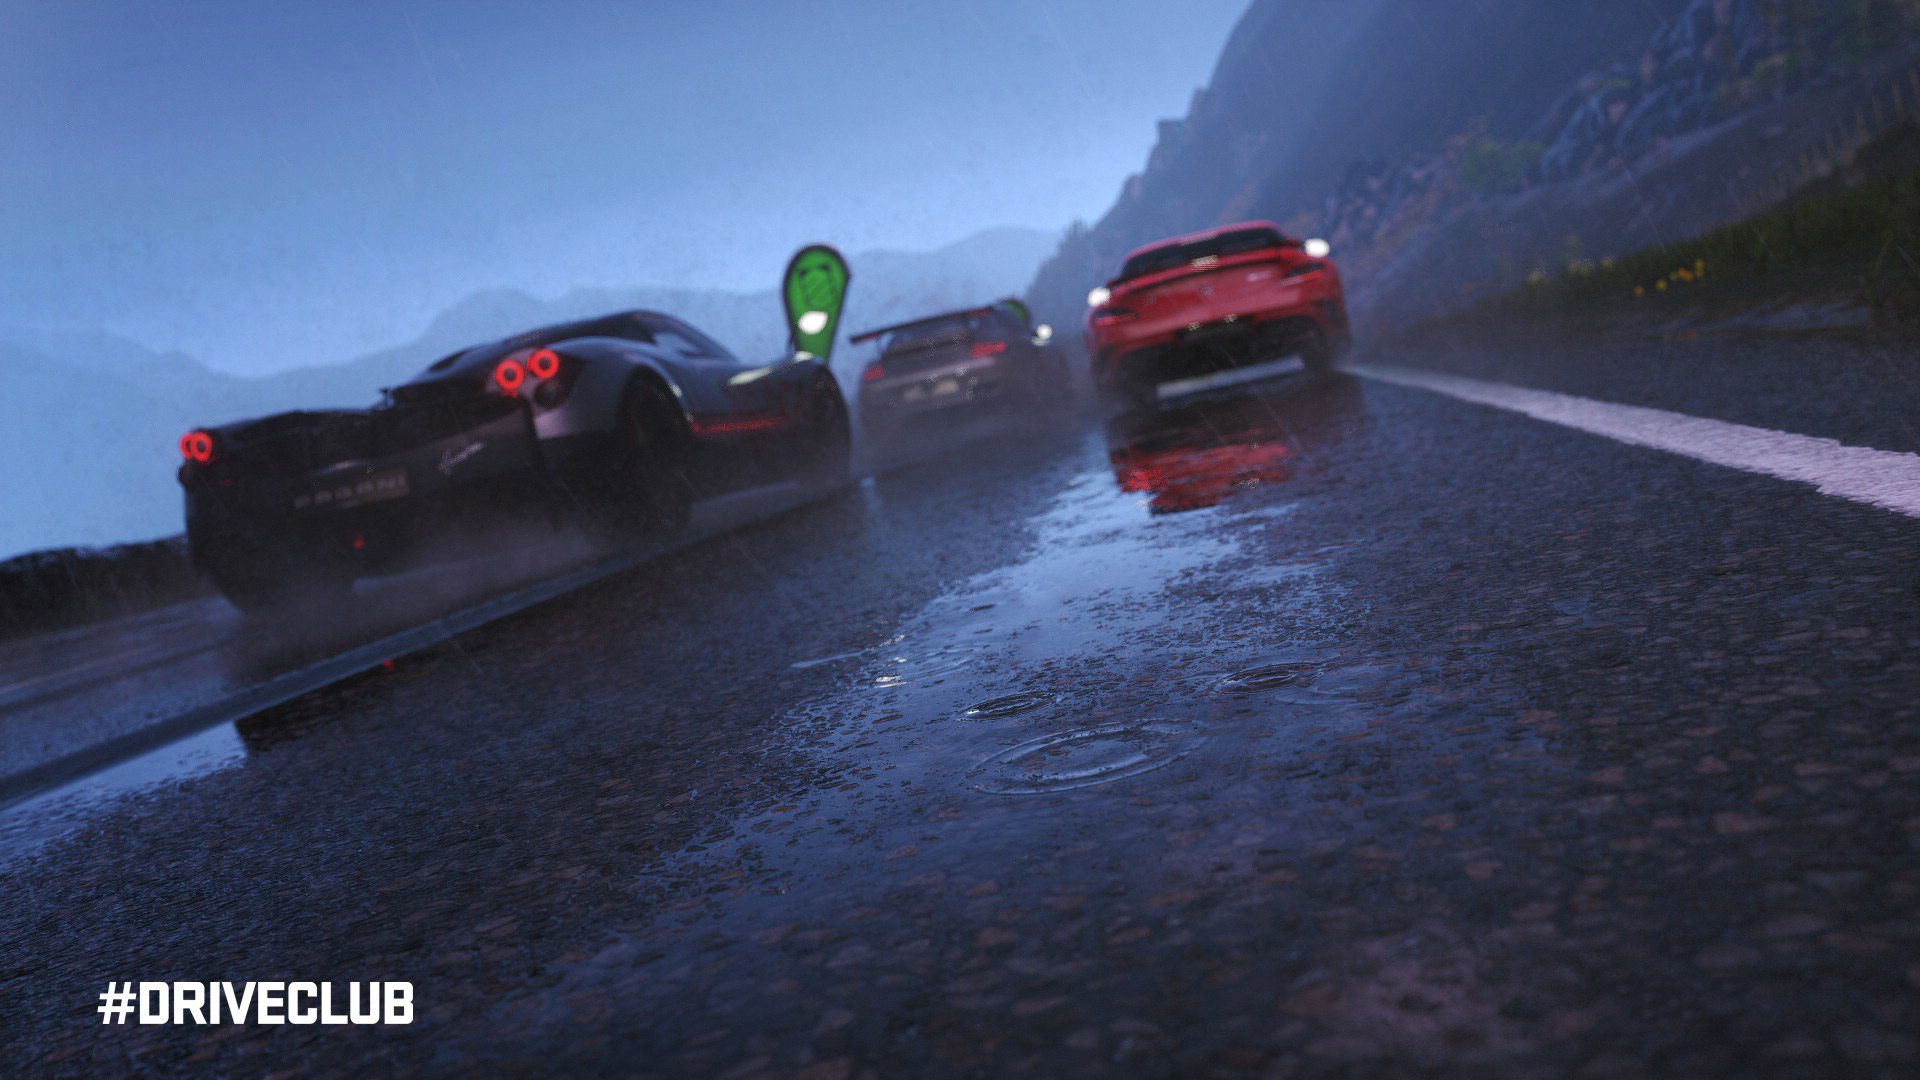 Free Driveclub Wallpaper in 1920x1080